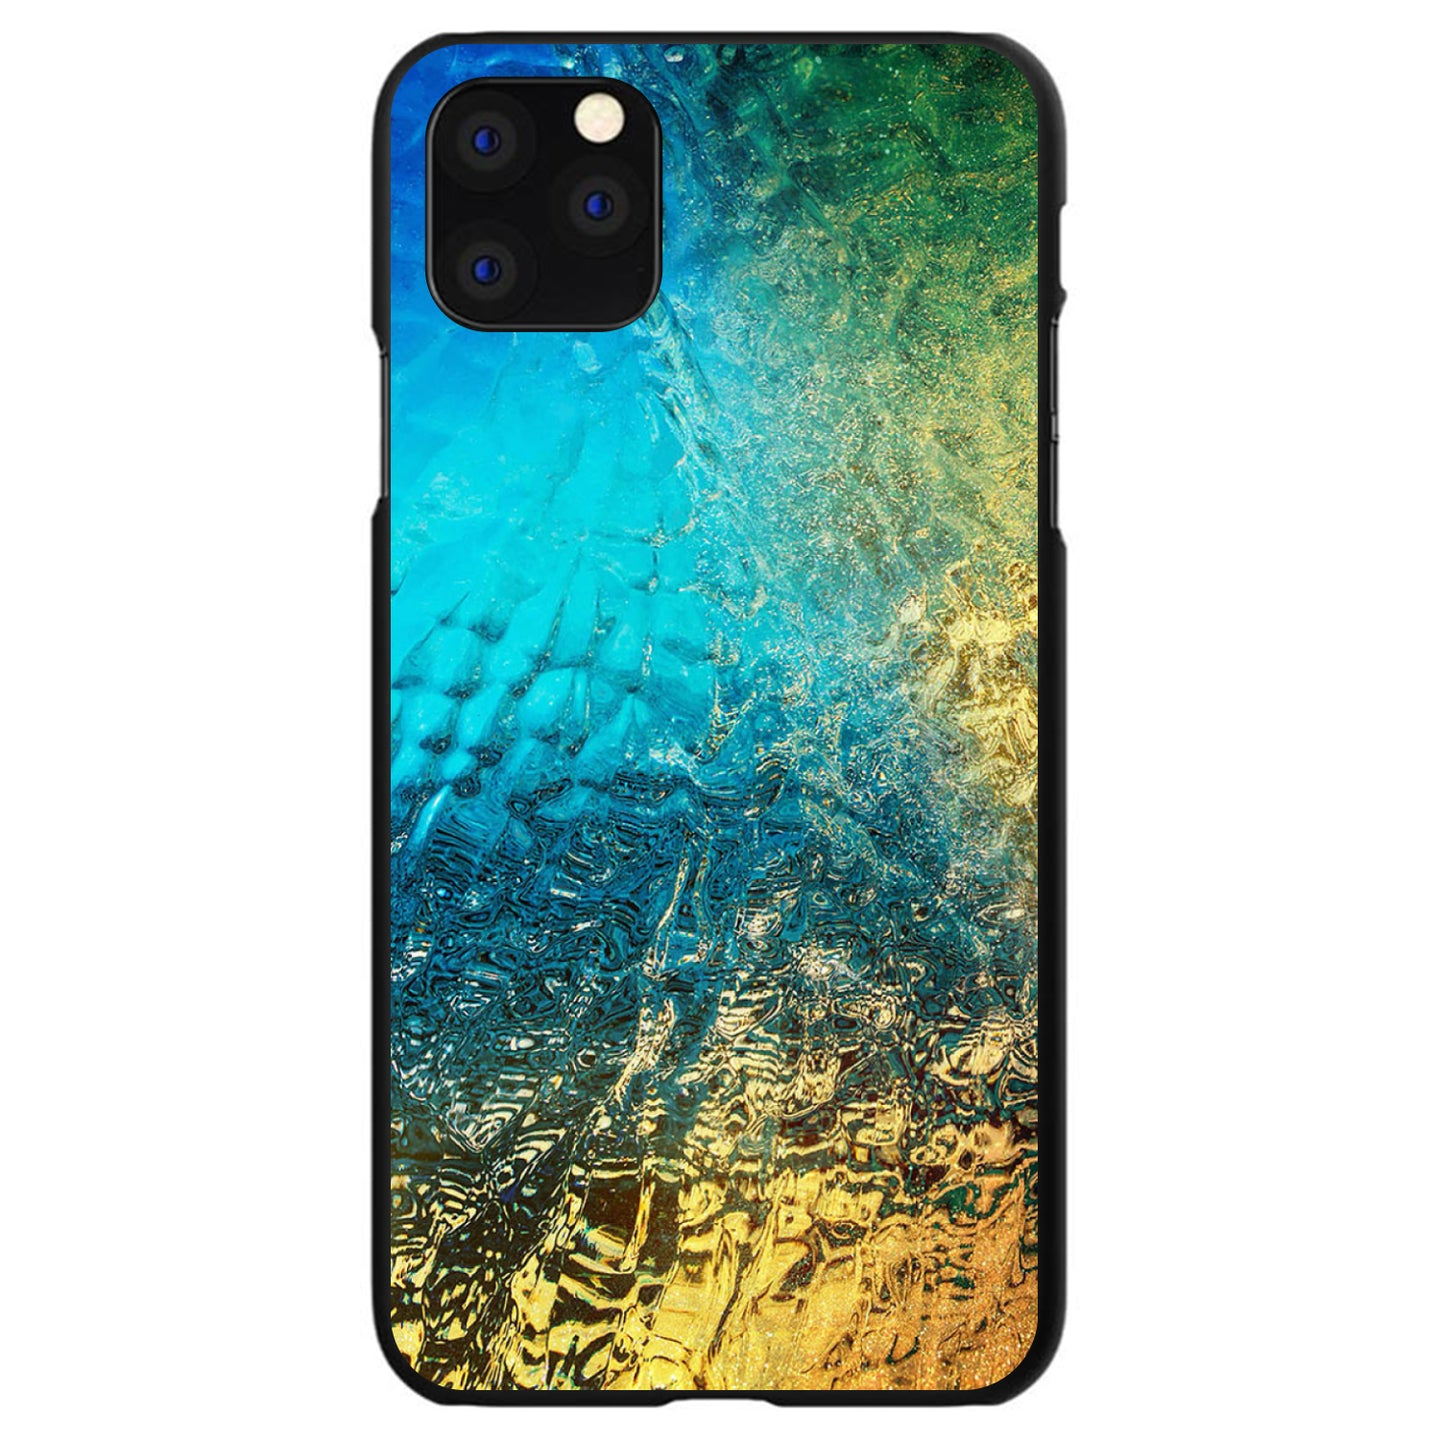 DistinctInk® Hard Plastic Snap-On Case for Apple iPhone - Colorful Rainbow Waterfall